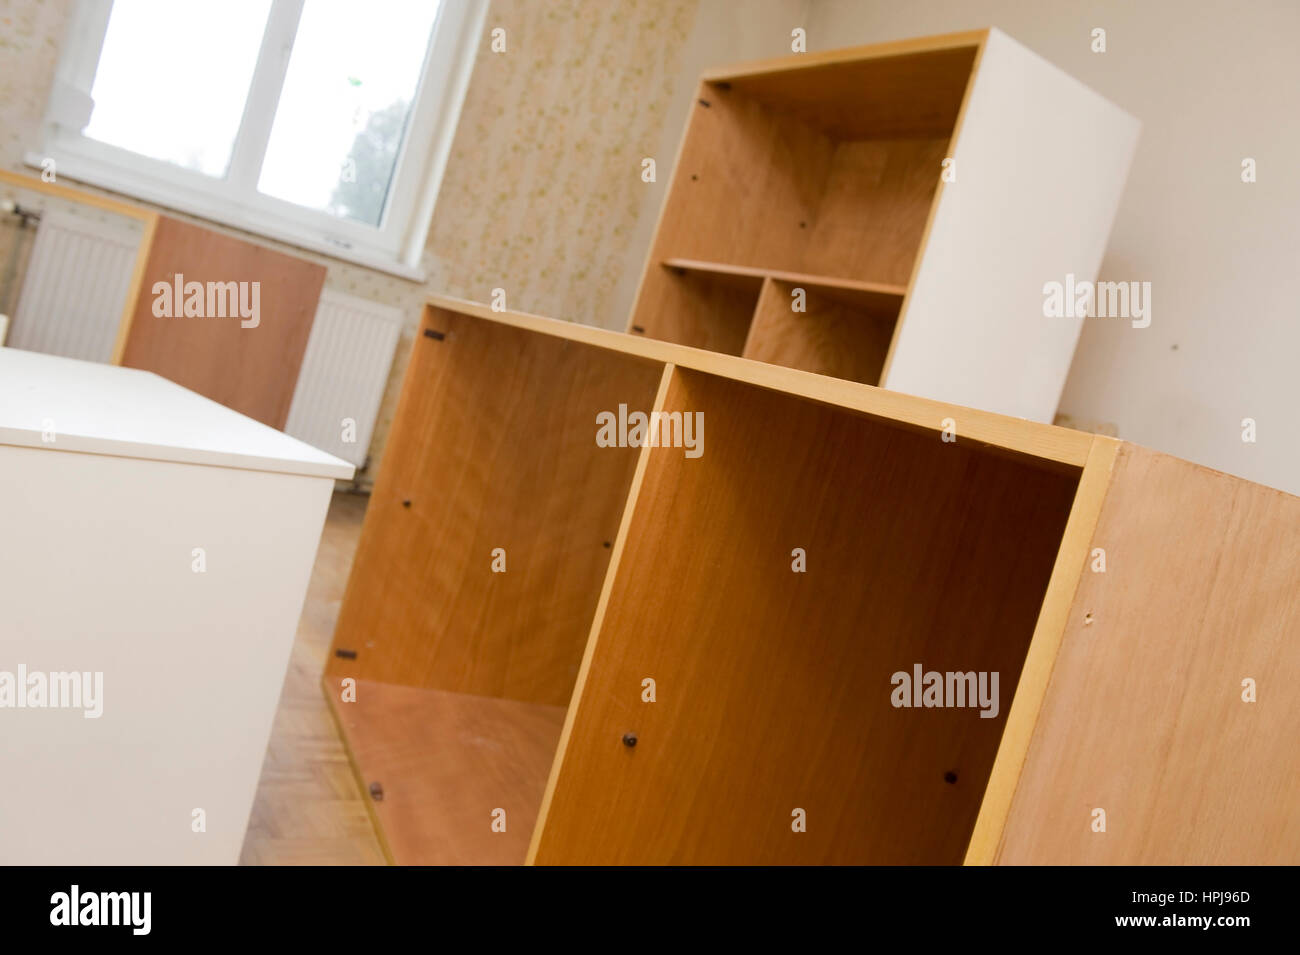 Alte, leere Moebel im Wohnraum - old furnitures in a room Stock Photo